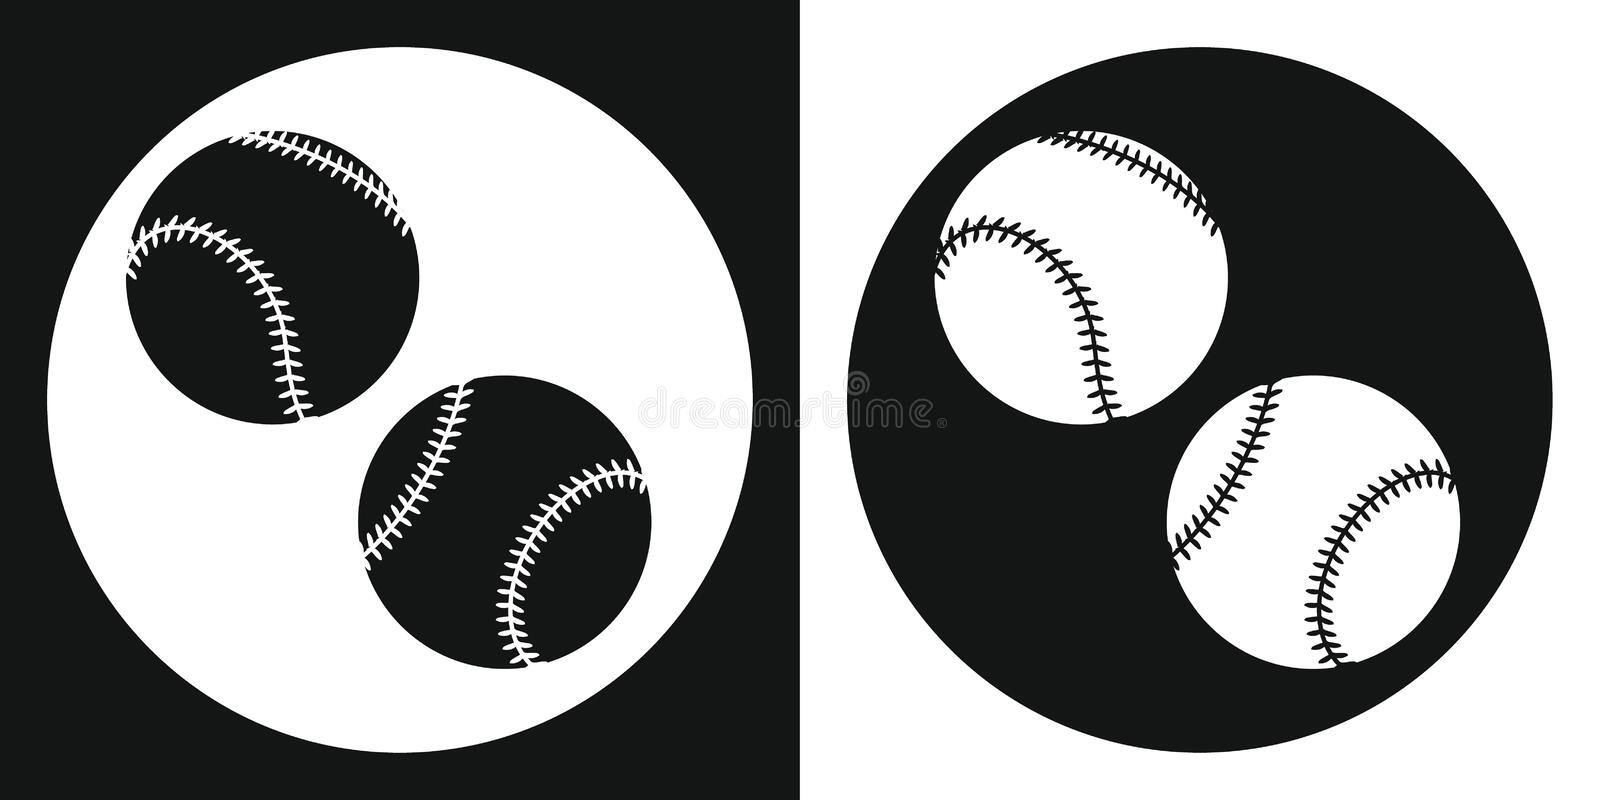 Baseball ball icon. Silhouette baseball ball on a black and white background. Sports Equipment. Vector Illustration. royalty free stock photo